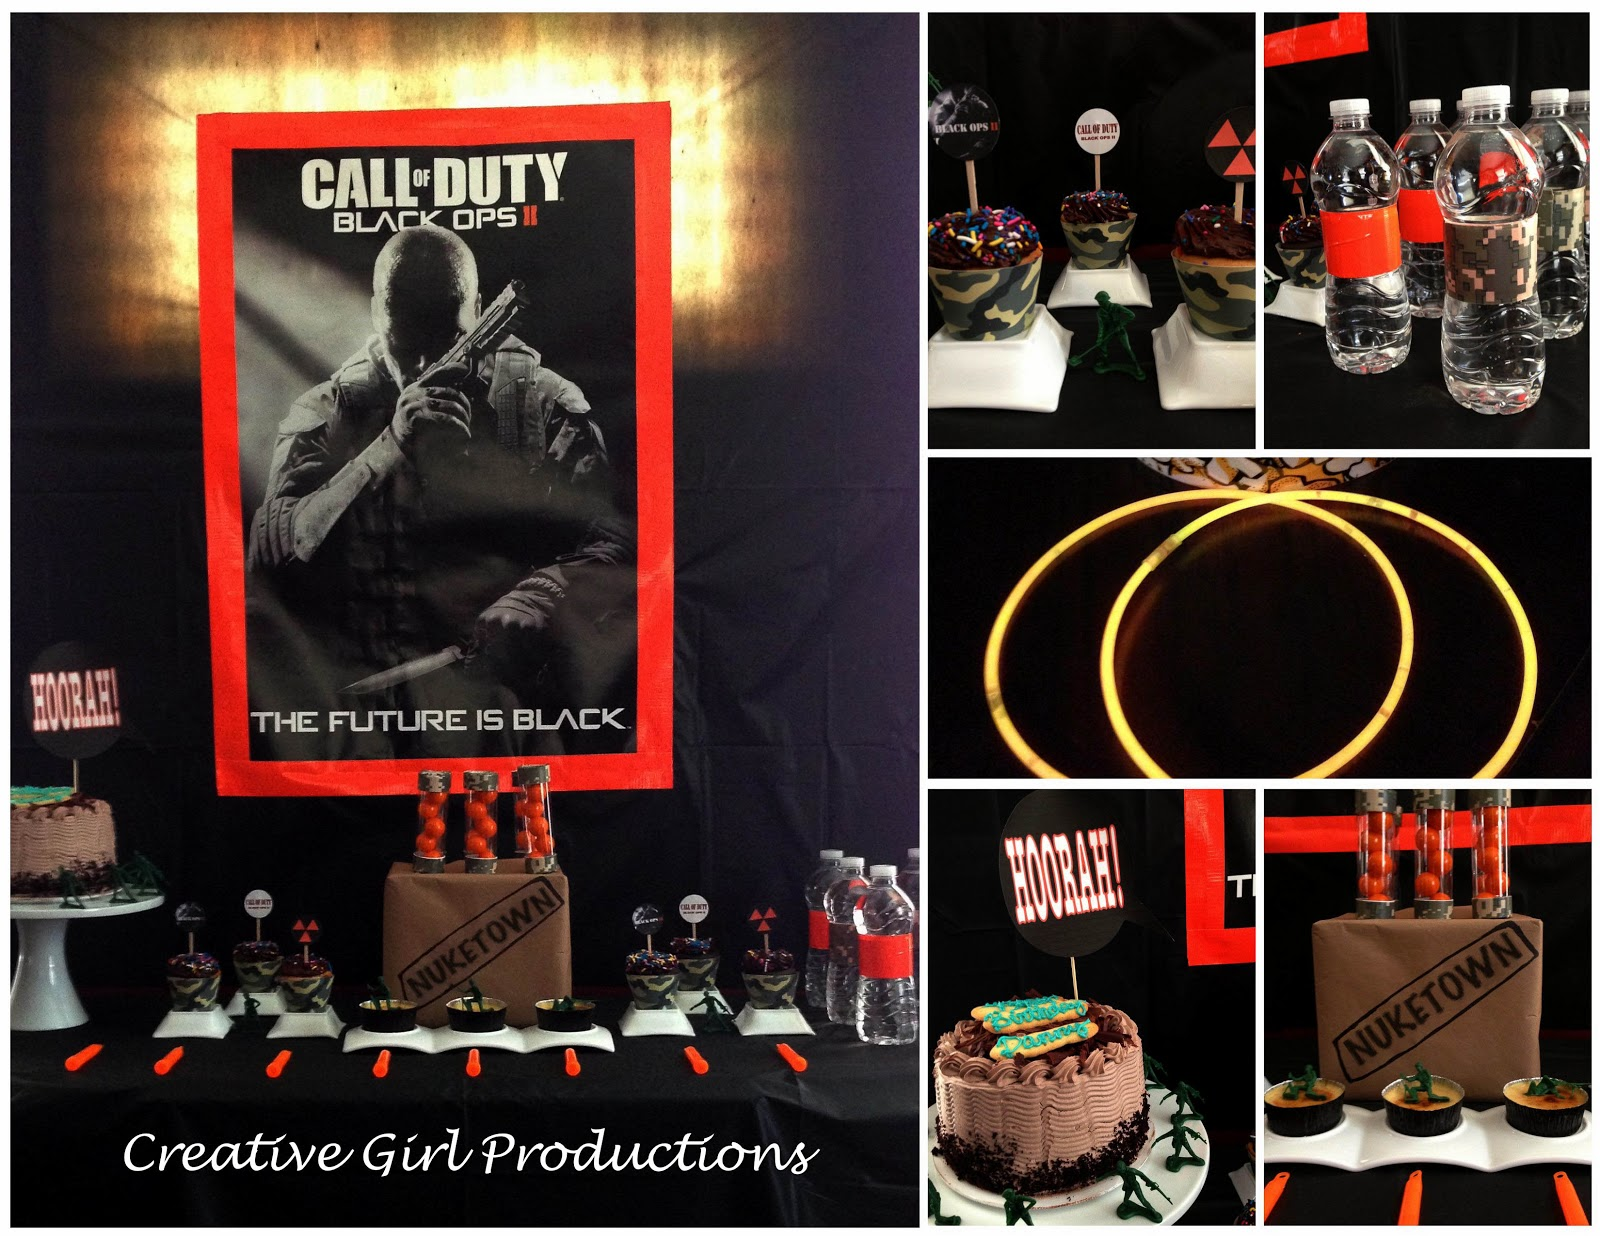 Creative Girl Productions Call of Duty Black Ops II 13th – 13th Birthday Party Invitations for Boys